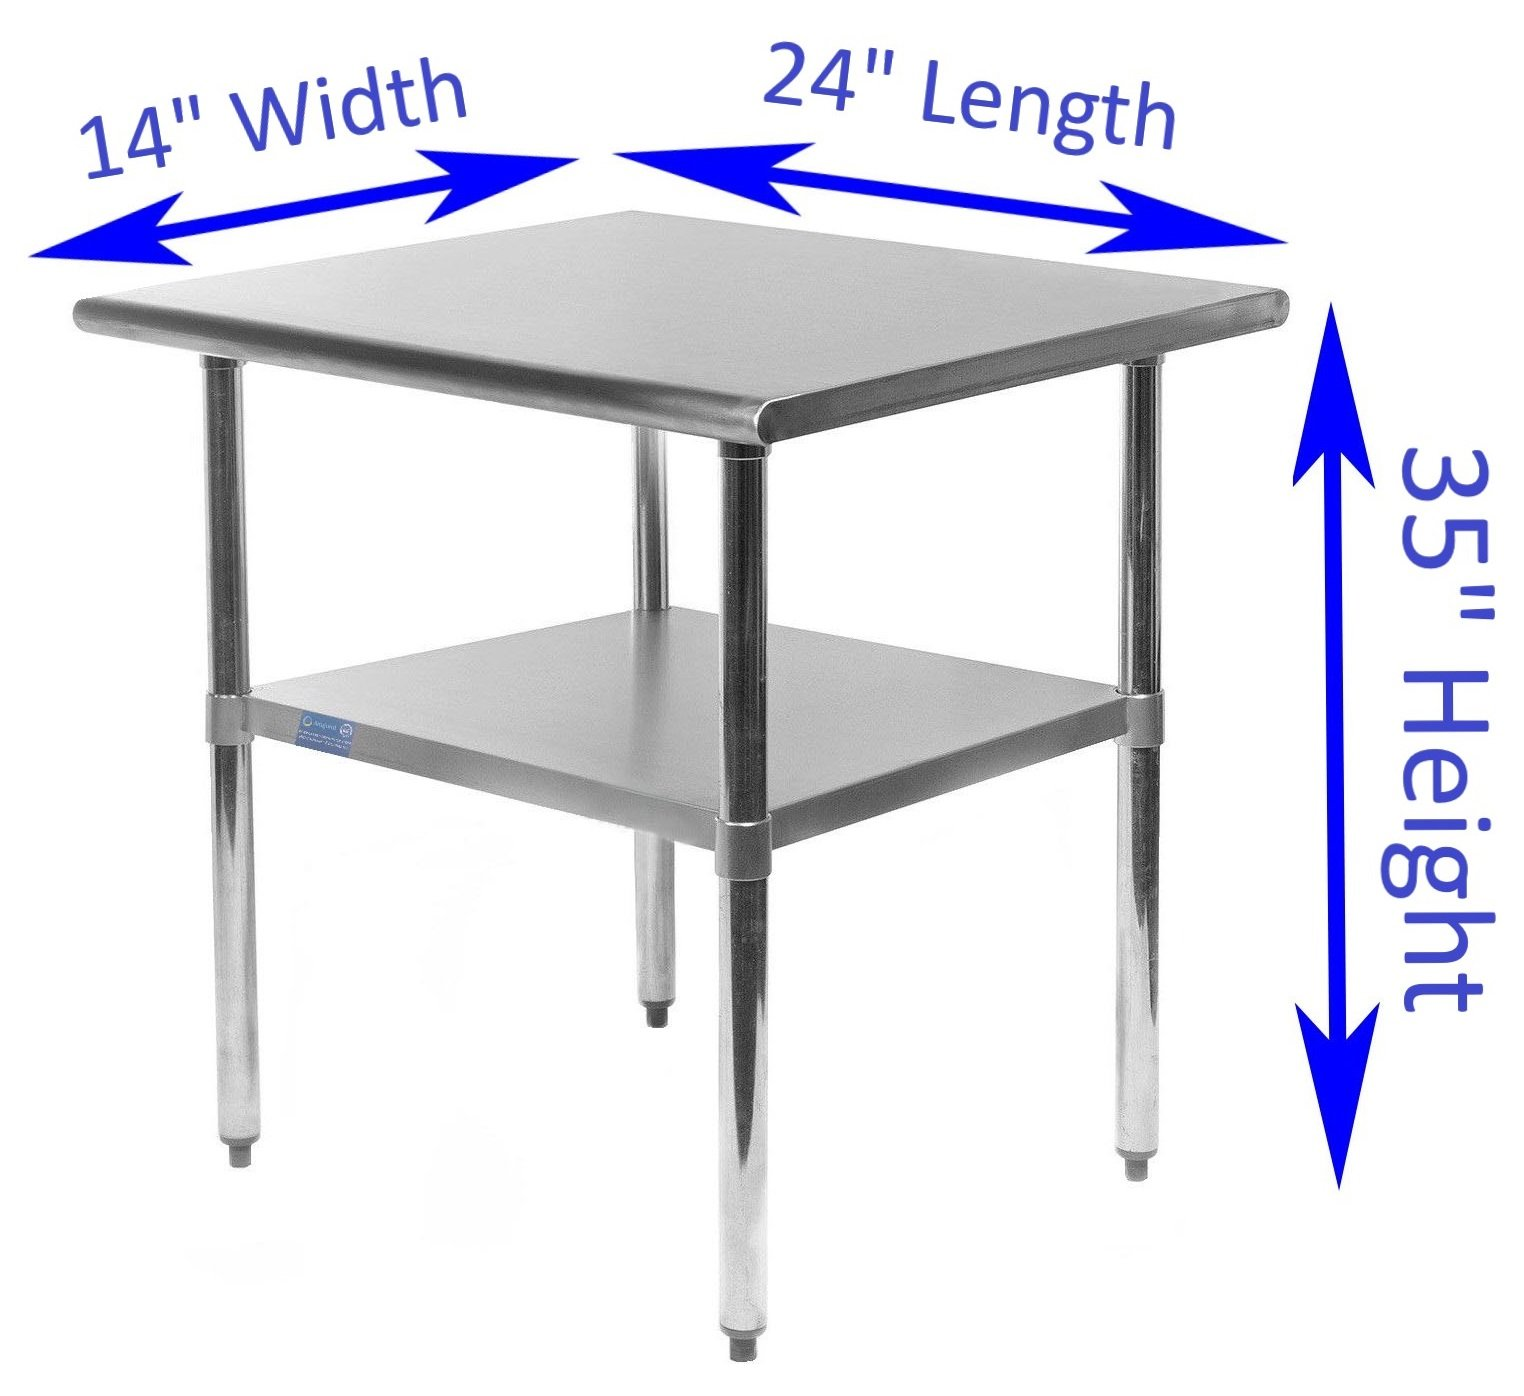 14'' X 24'' Work Table Stainless Steel Food Prep Worktable Restaurant Supply by AmGood (Image #2)